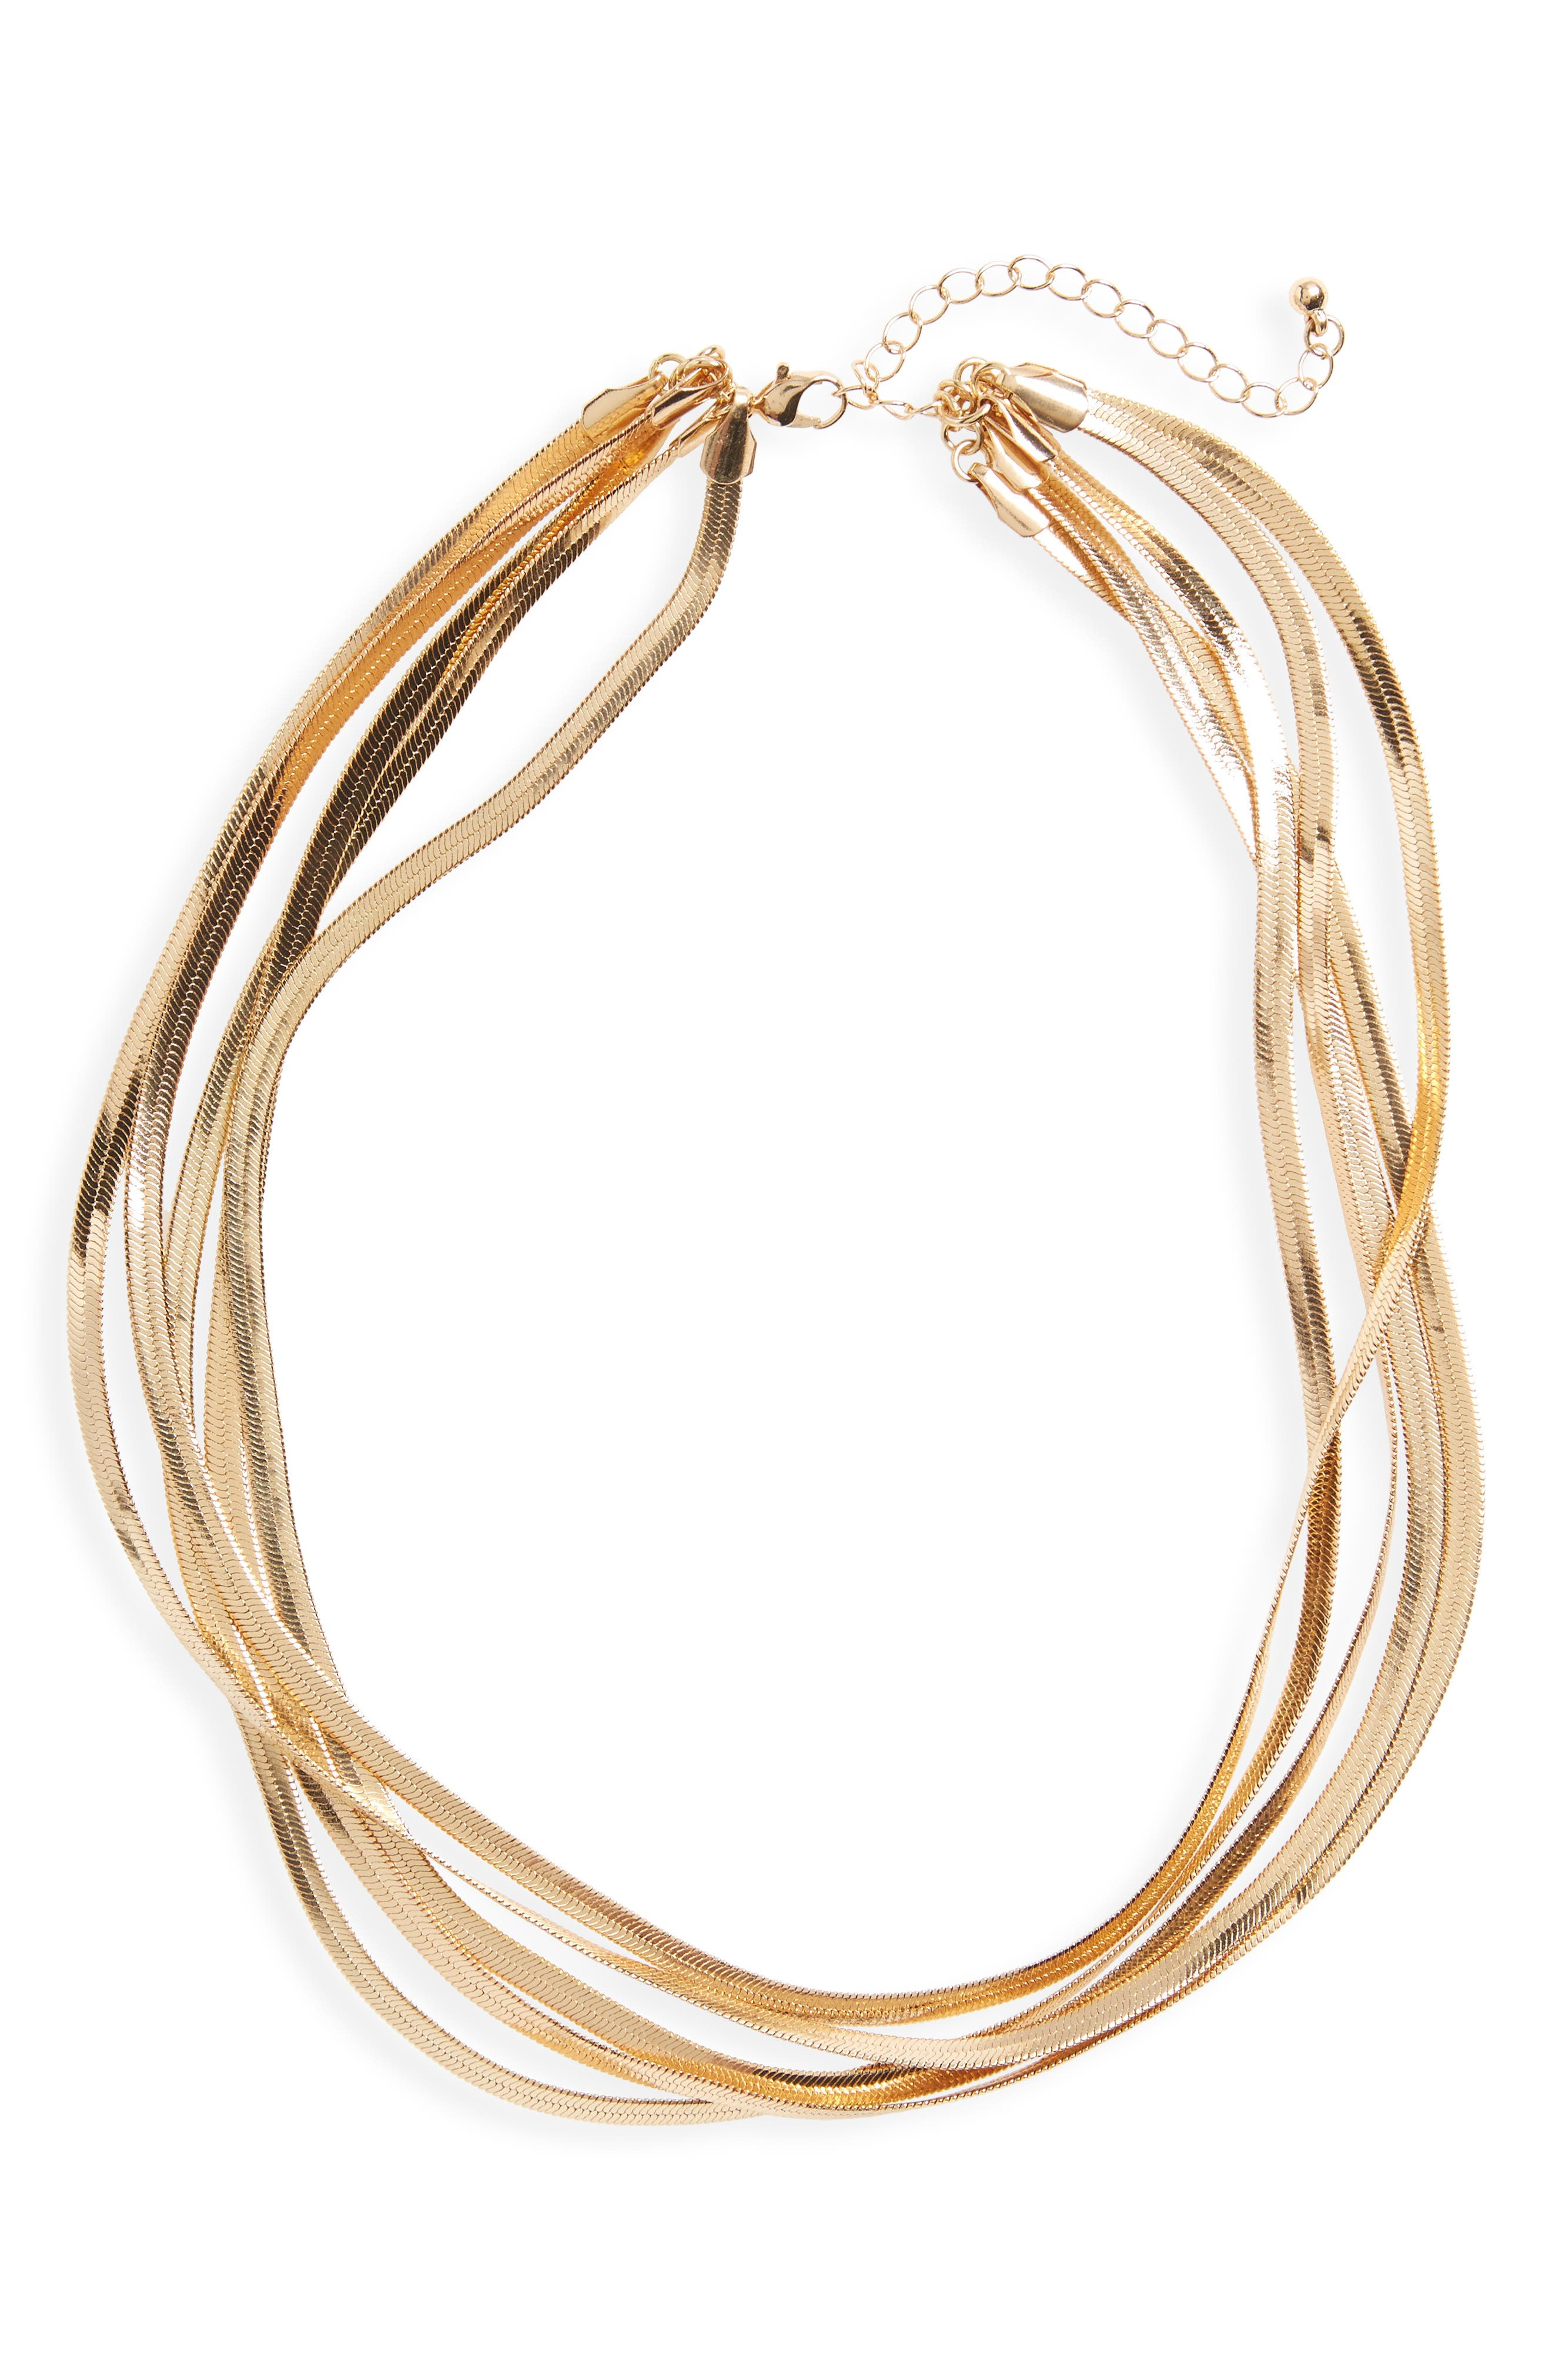 Layered Snake Chain Necklace,                         Main,                         color, 710